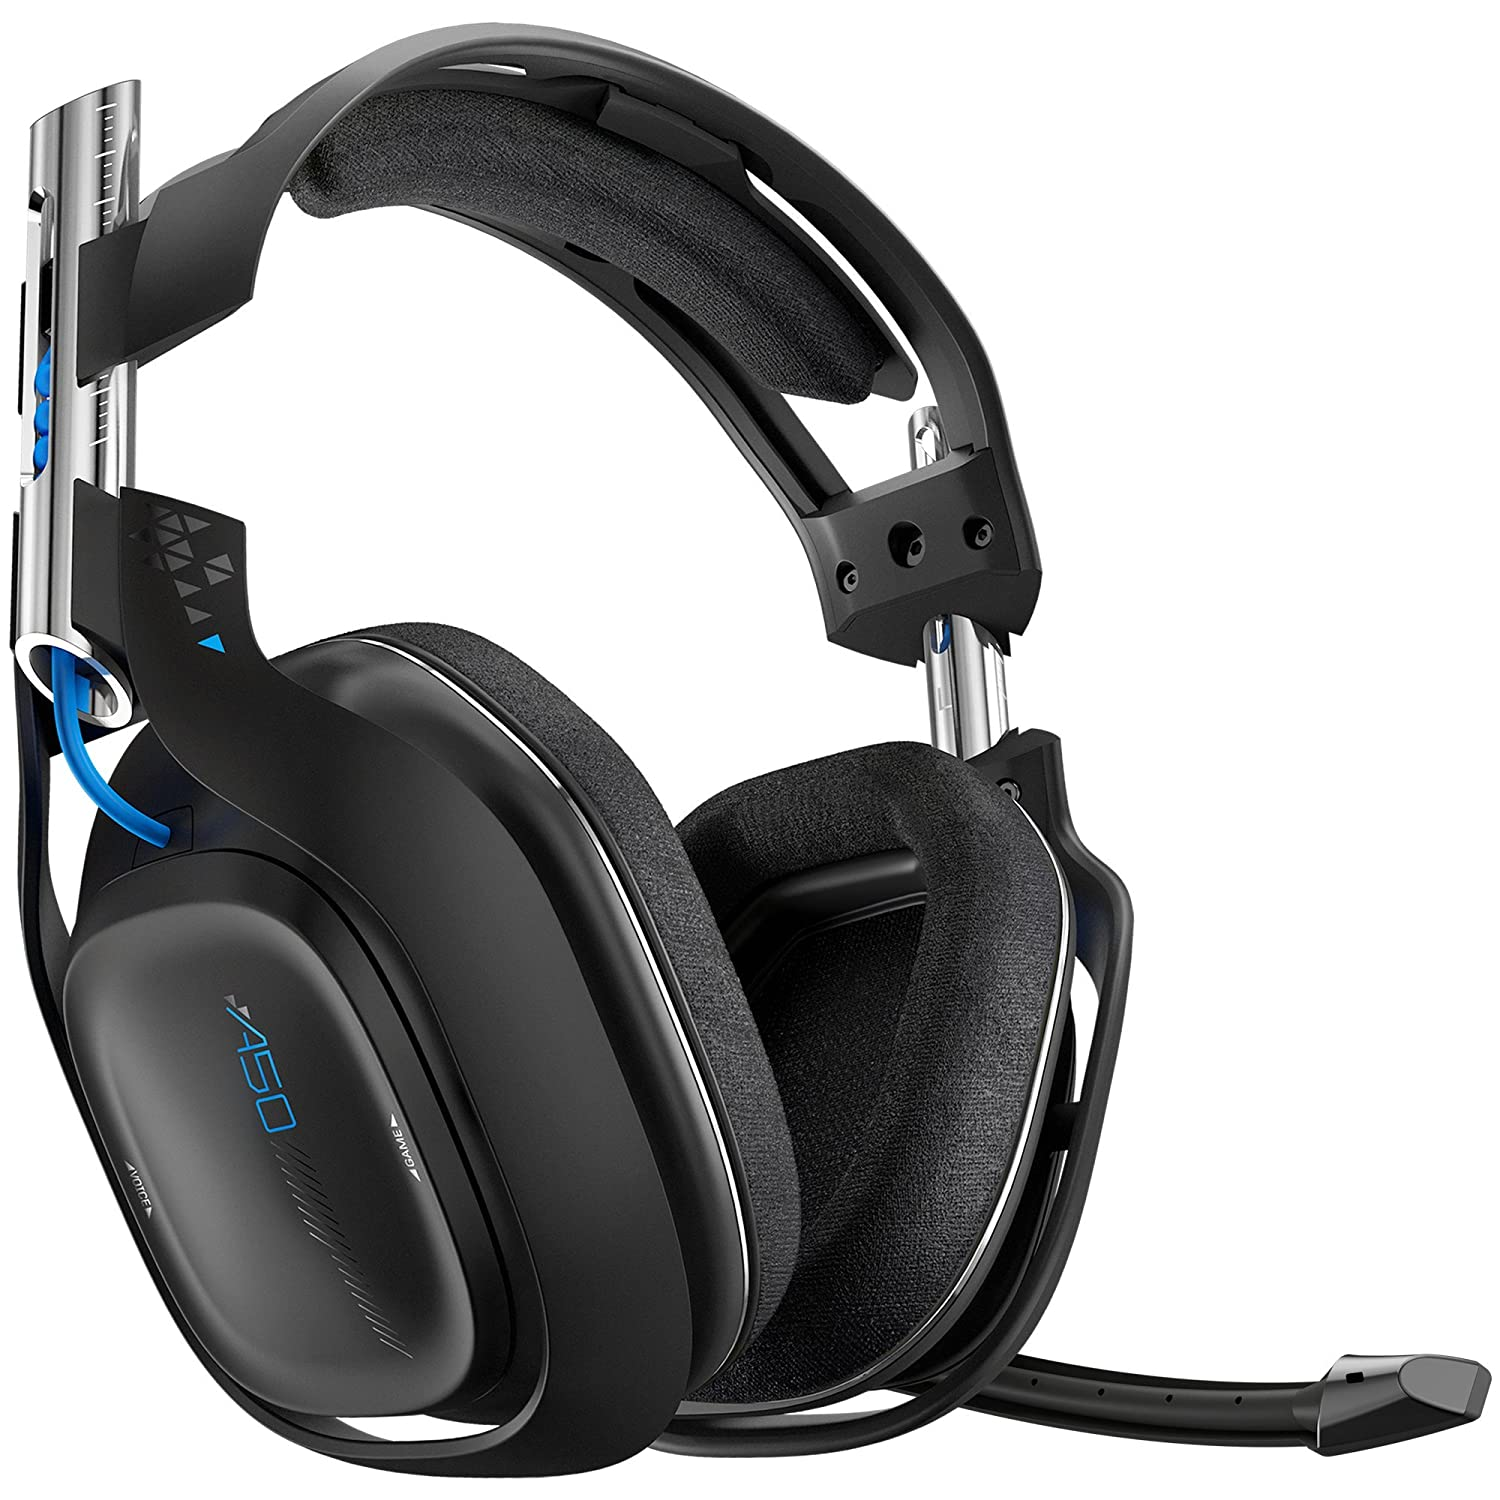 Whether you want an Astro PS4 headset or something made by Turtle Beach, read through these reviews to get the best product for you.